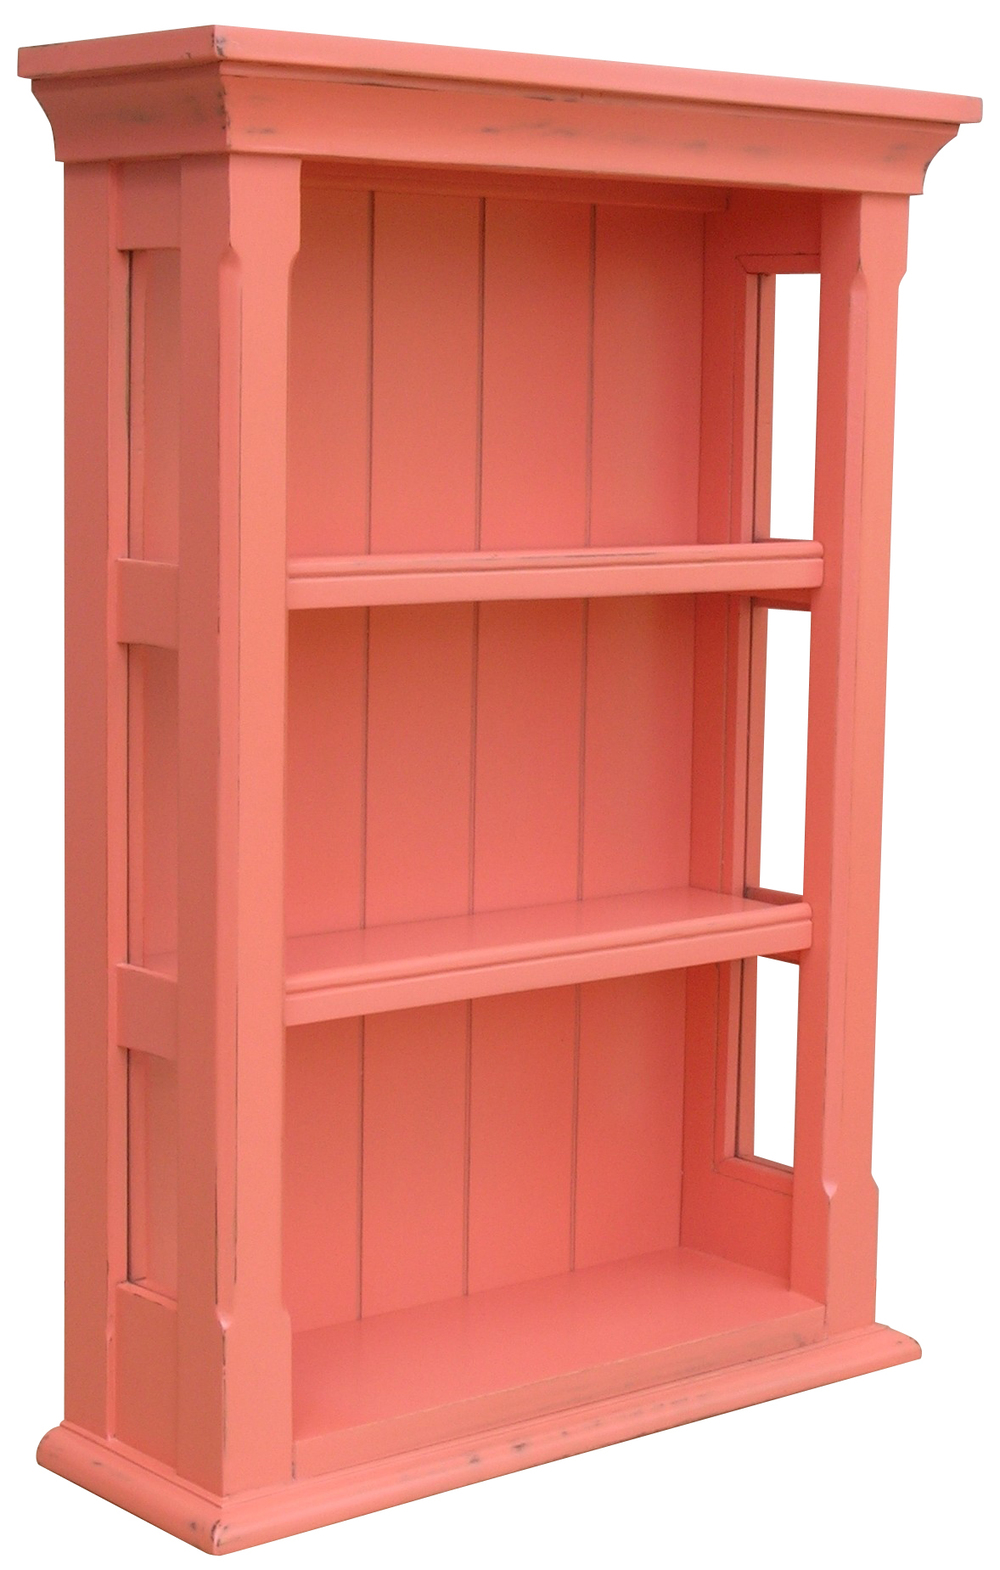 Trade Winds Furniture - Cottage Open Wall Cabinet